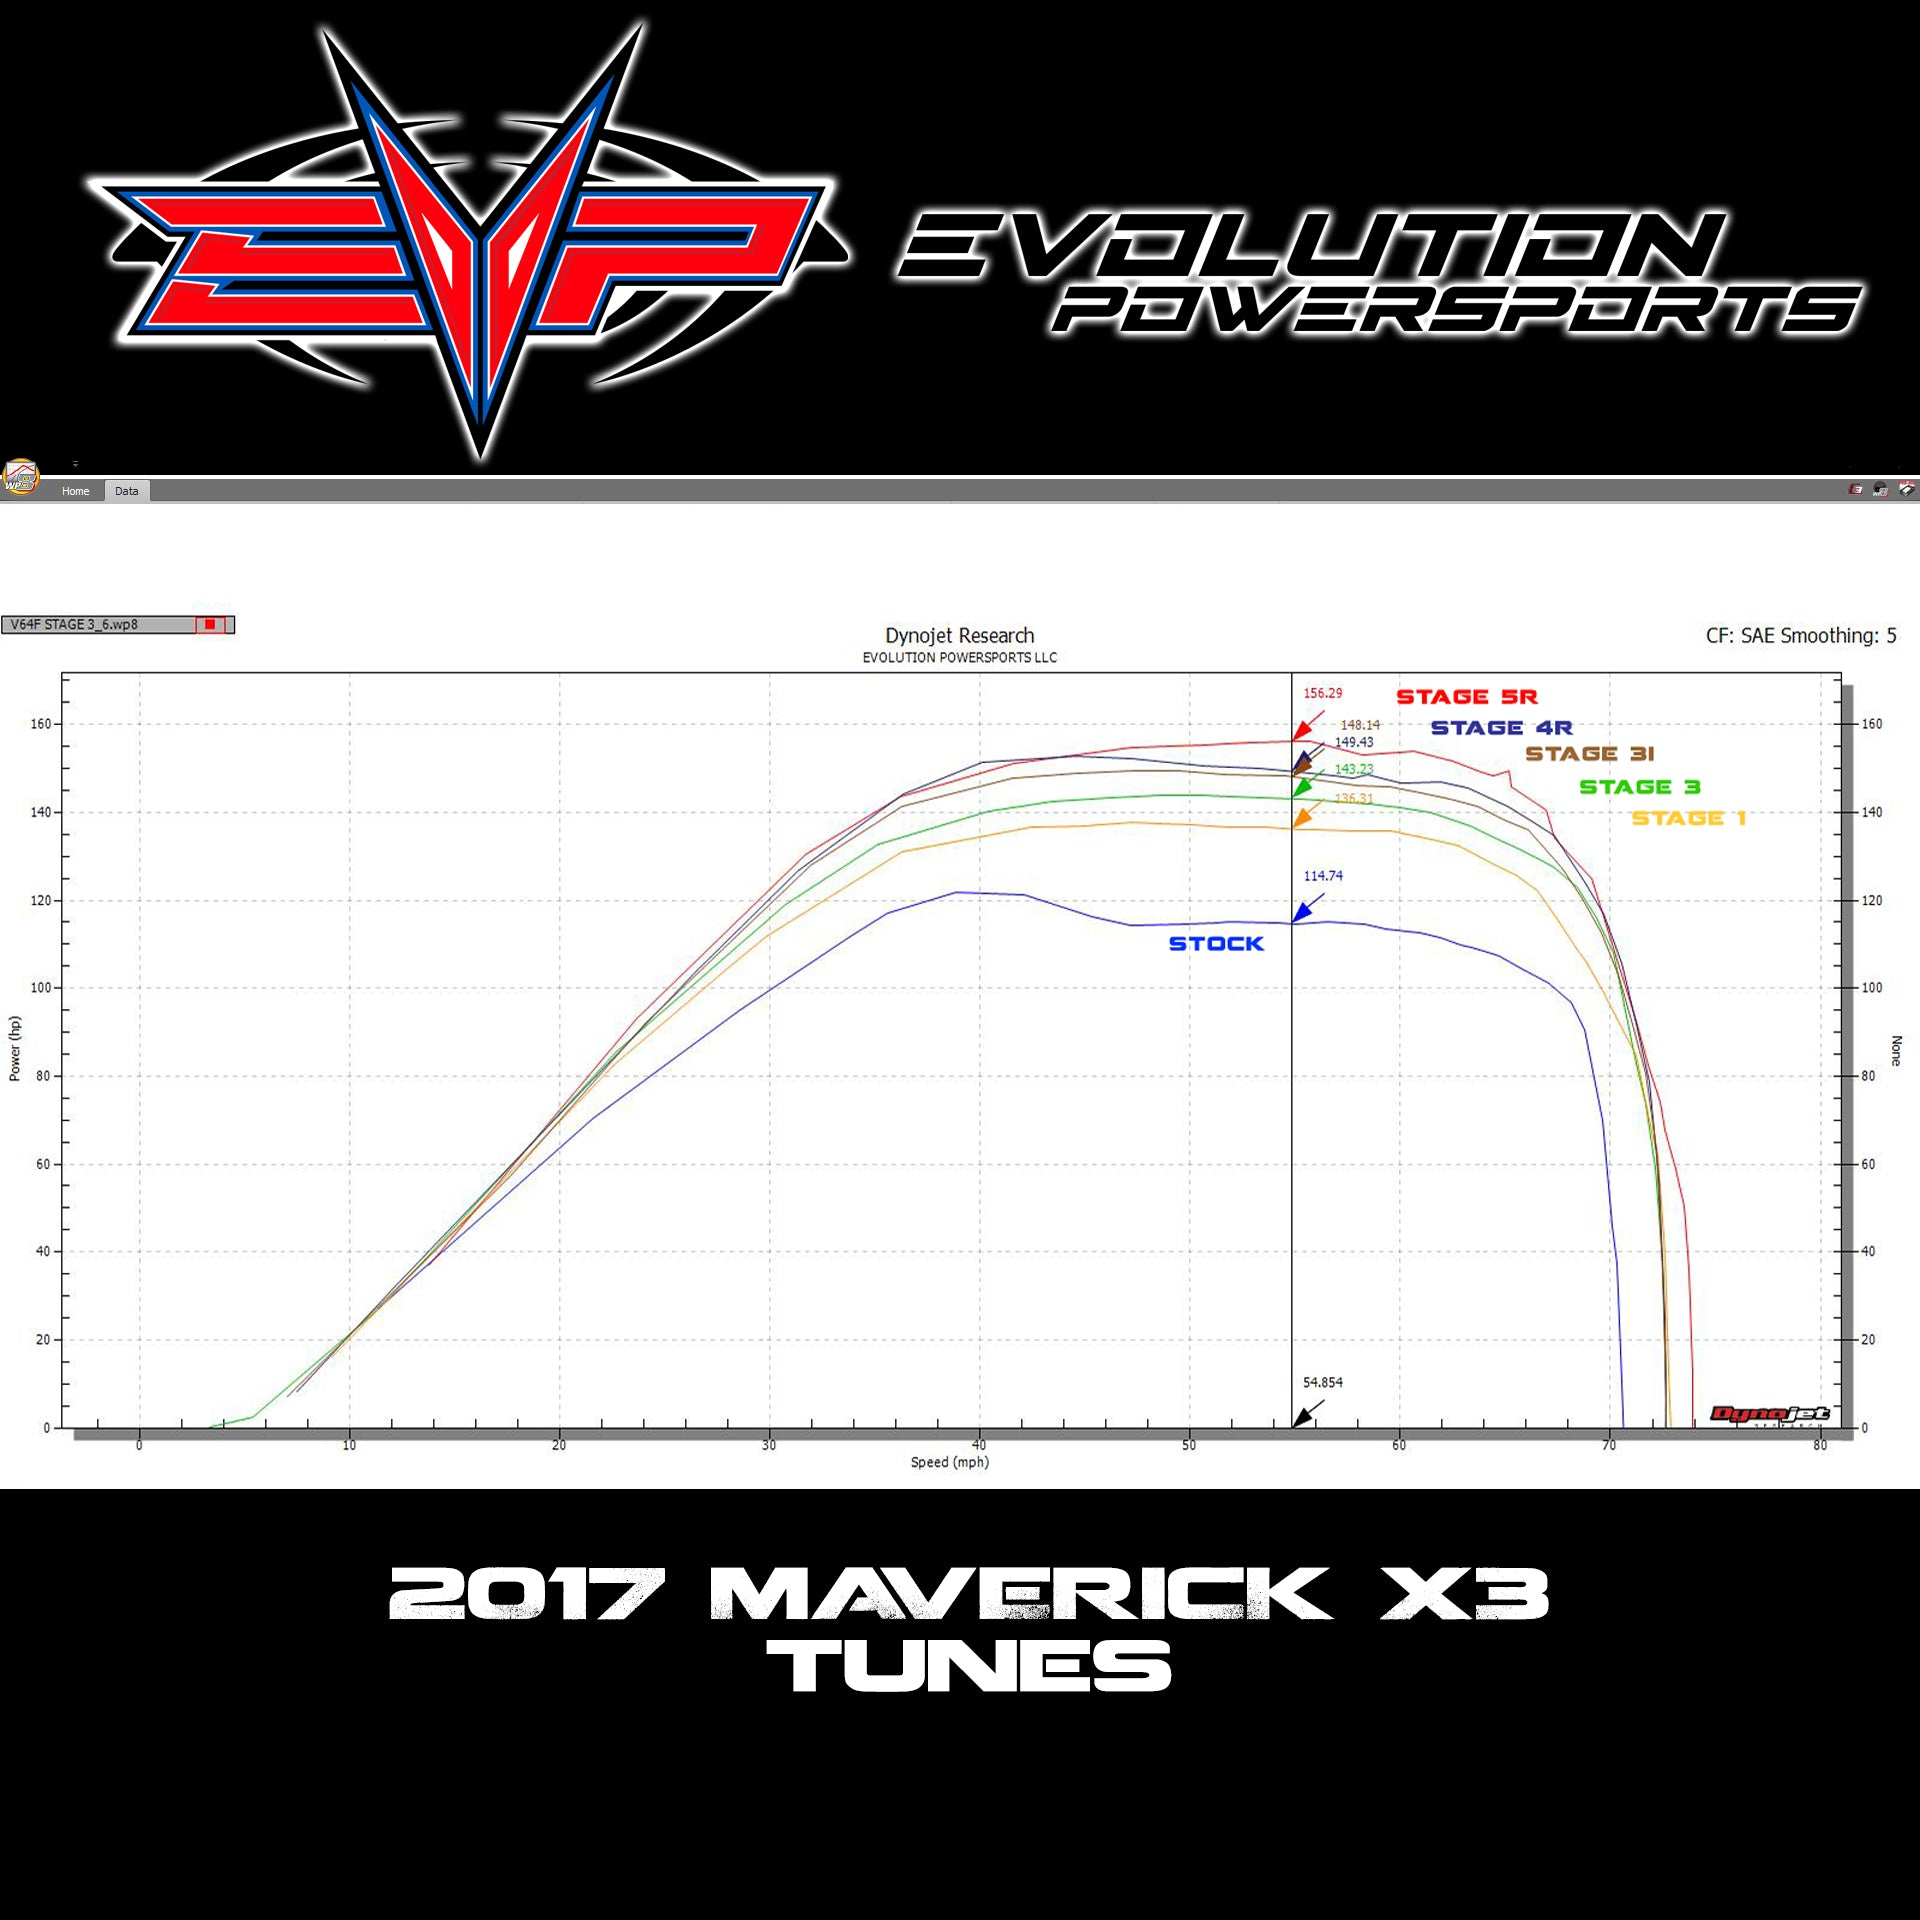 17_maverick_x3_dyno_ecu_tune